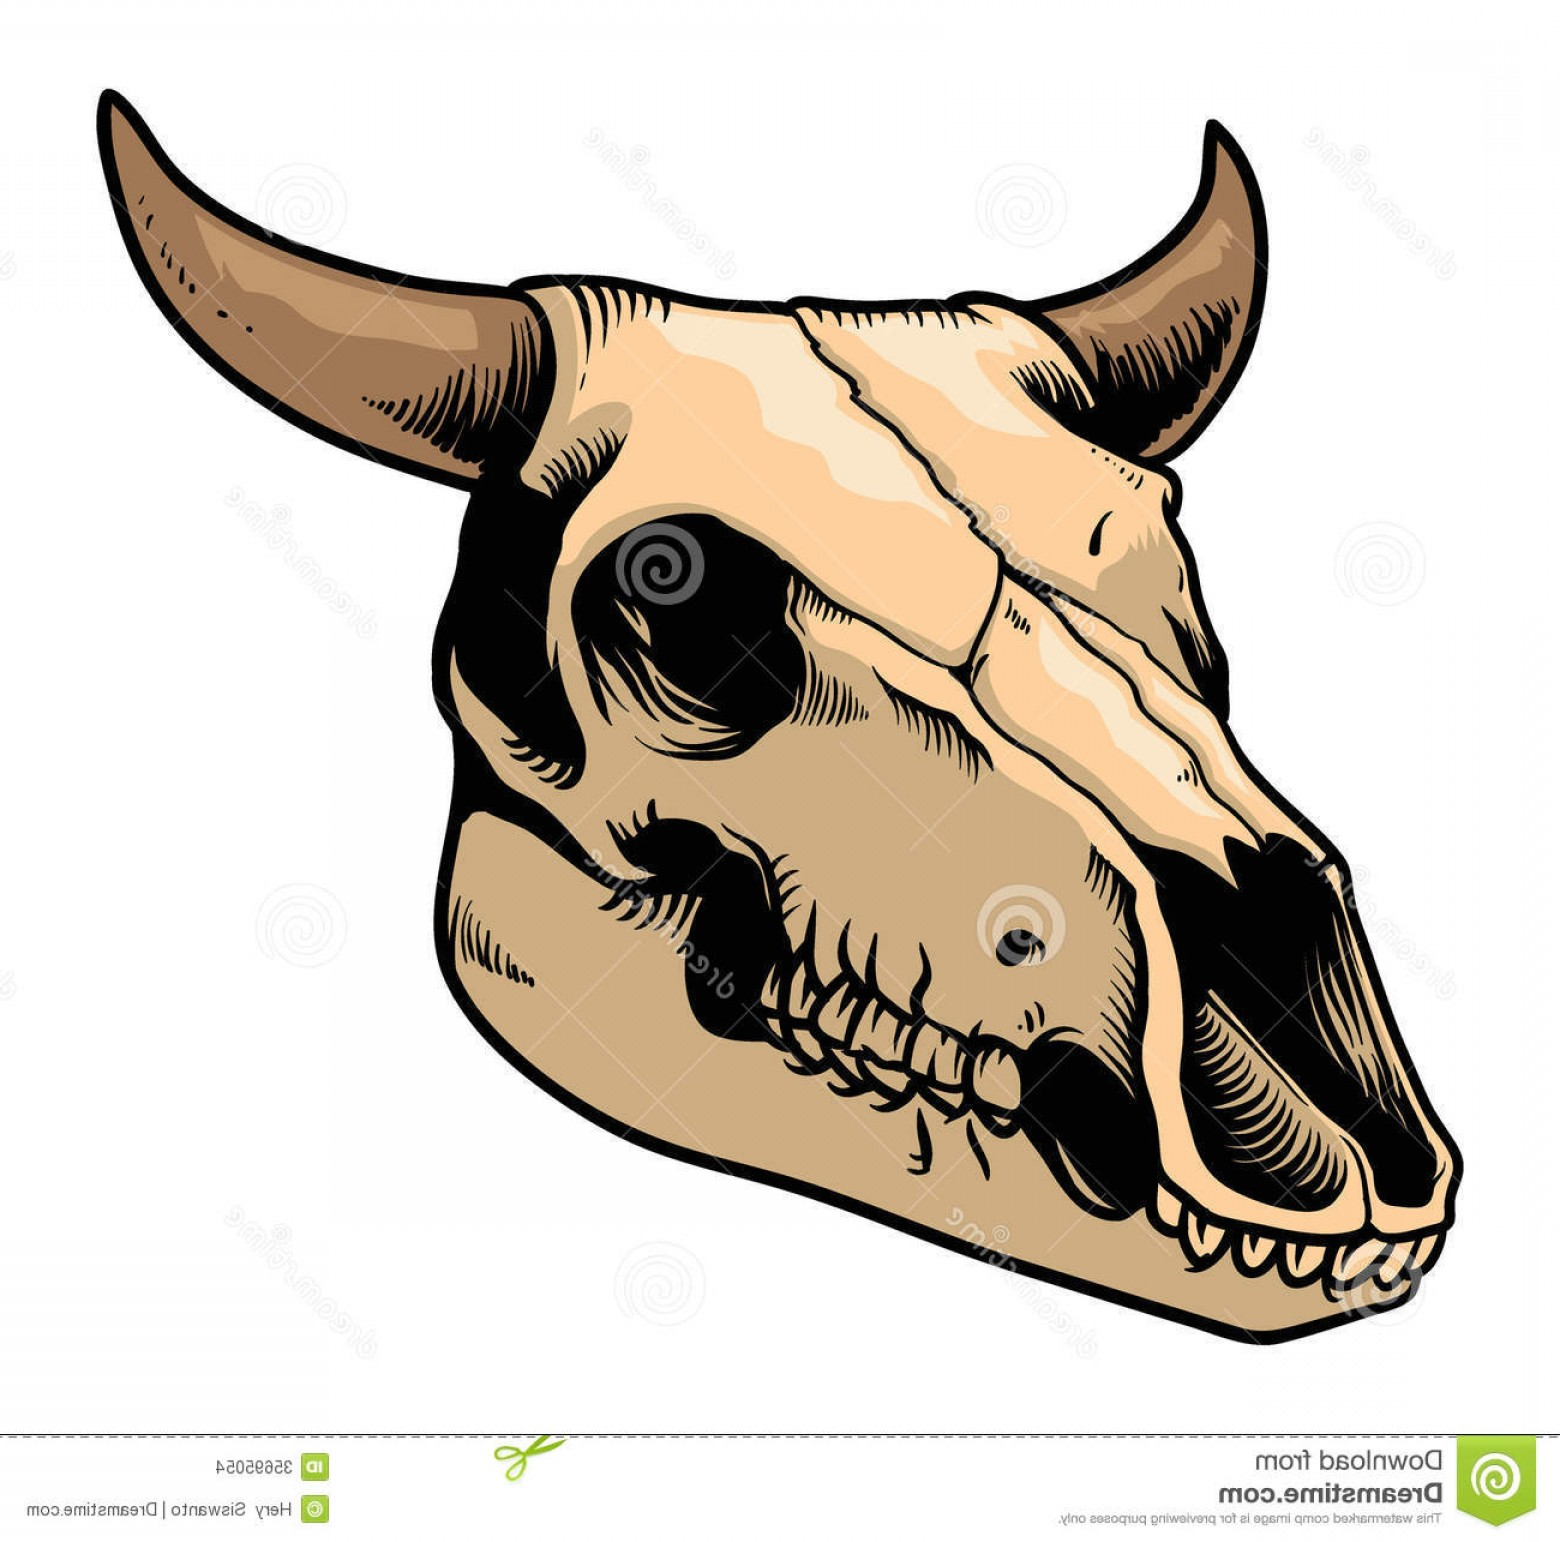 Cow Skull Vector Clip Art: Stock Images Cow Skull Vector Detailed Hand Draw Image